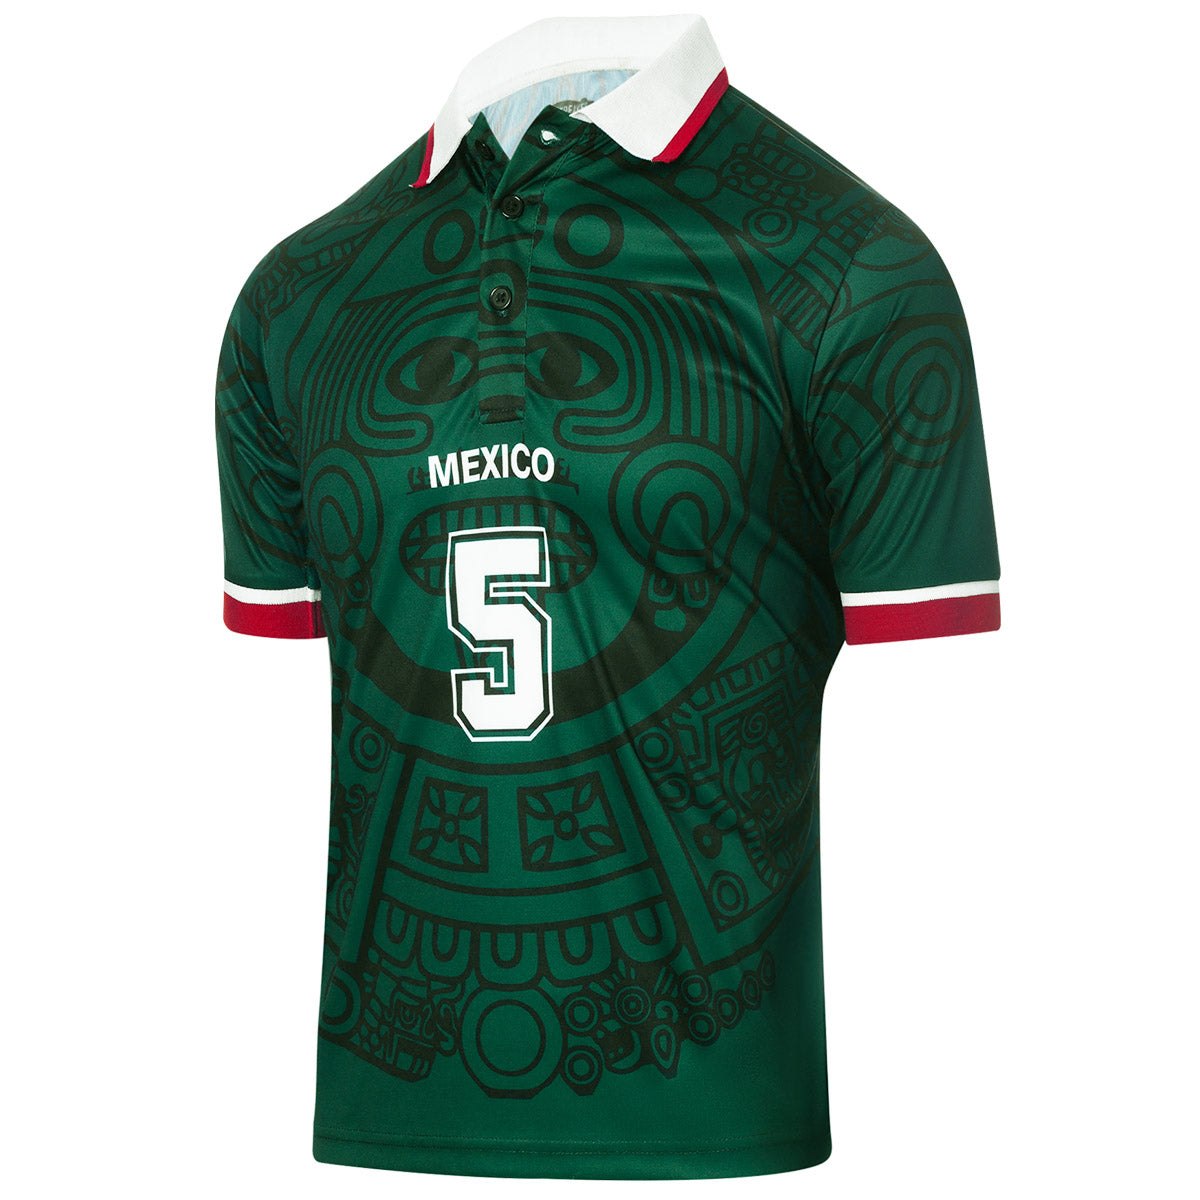 b10362d4cdf 1998 Mexico World Cup Soccer Jersey – Streaker Sports